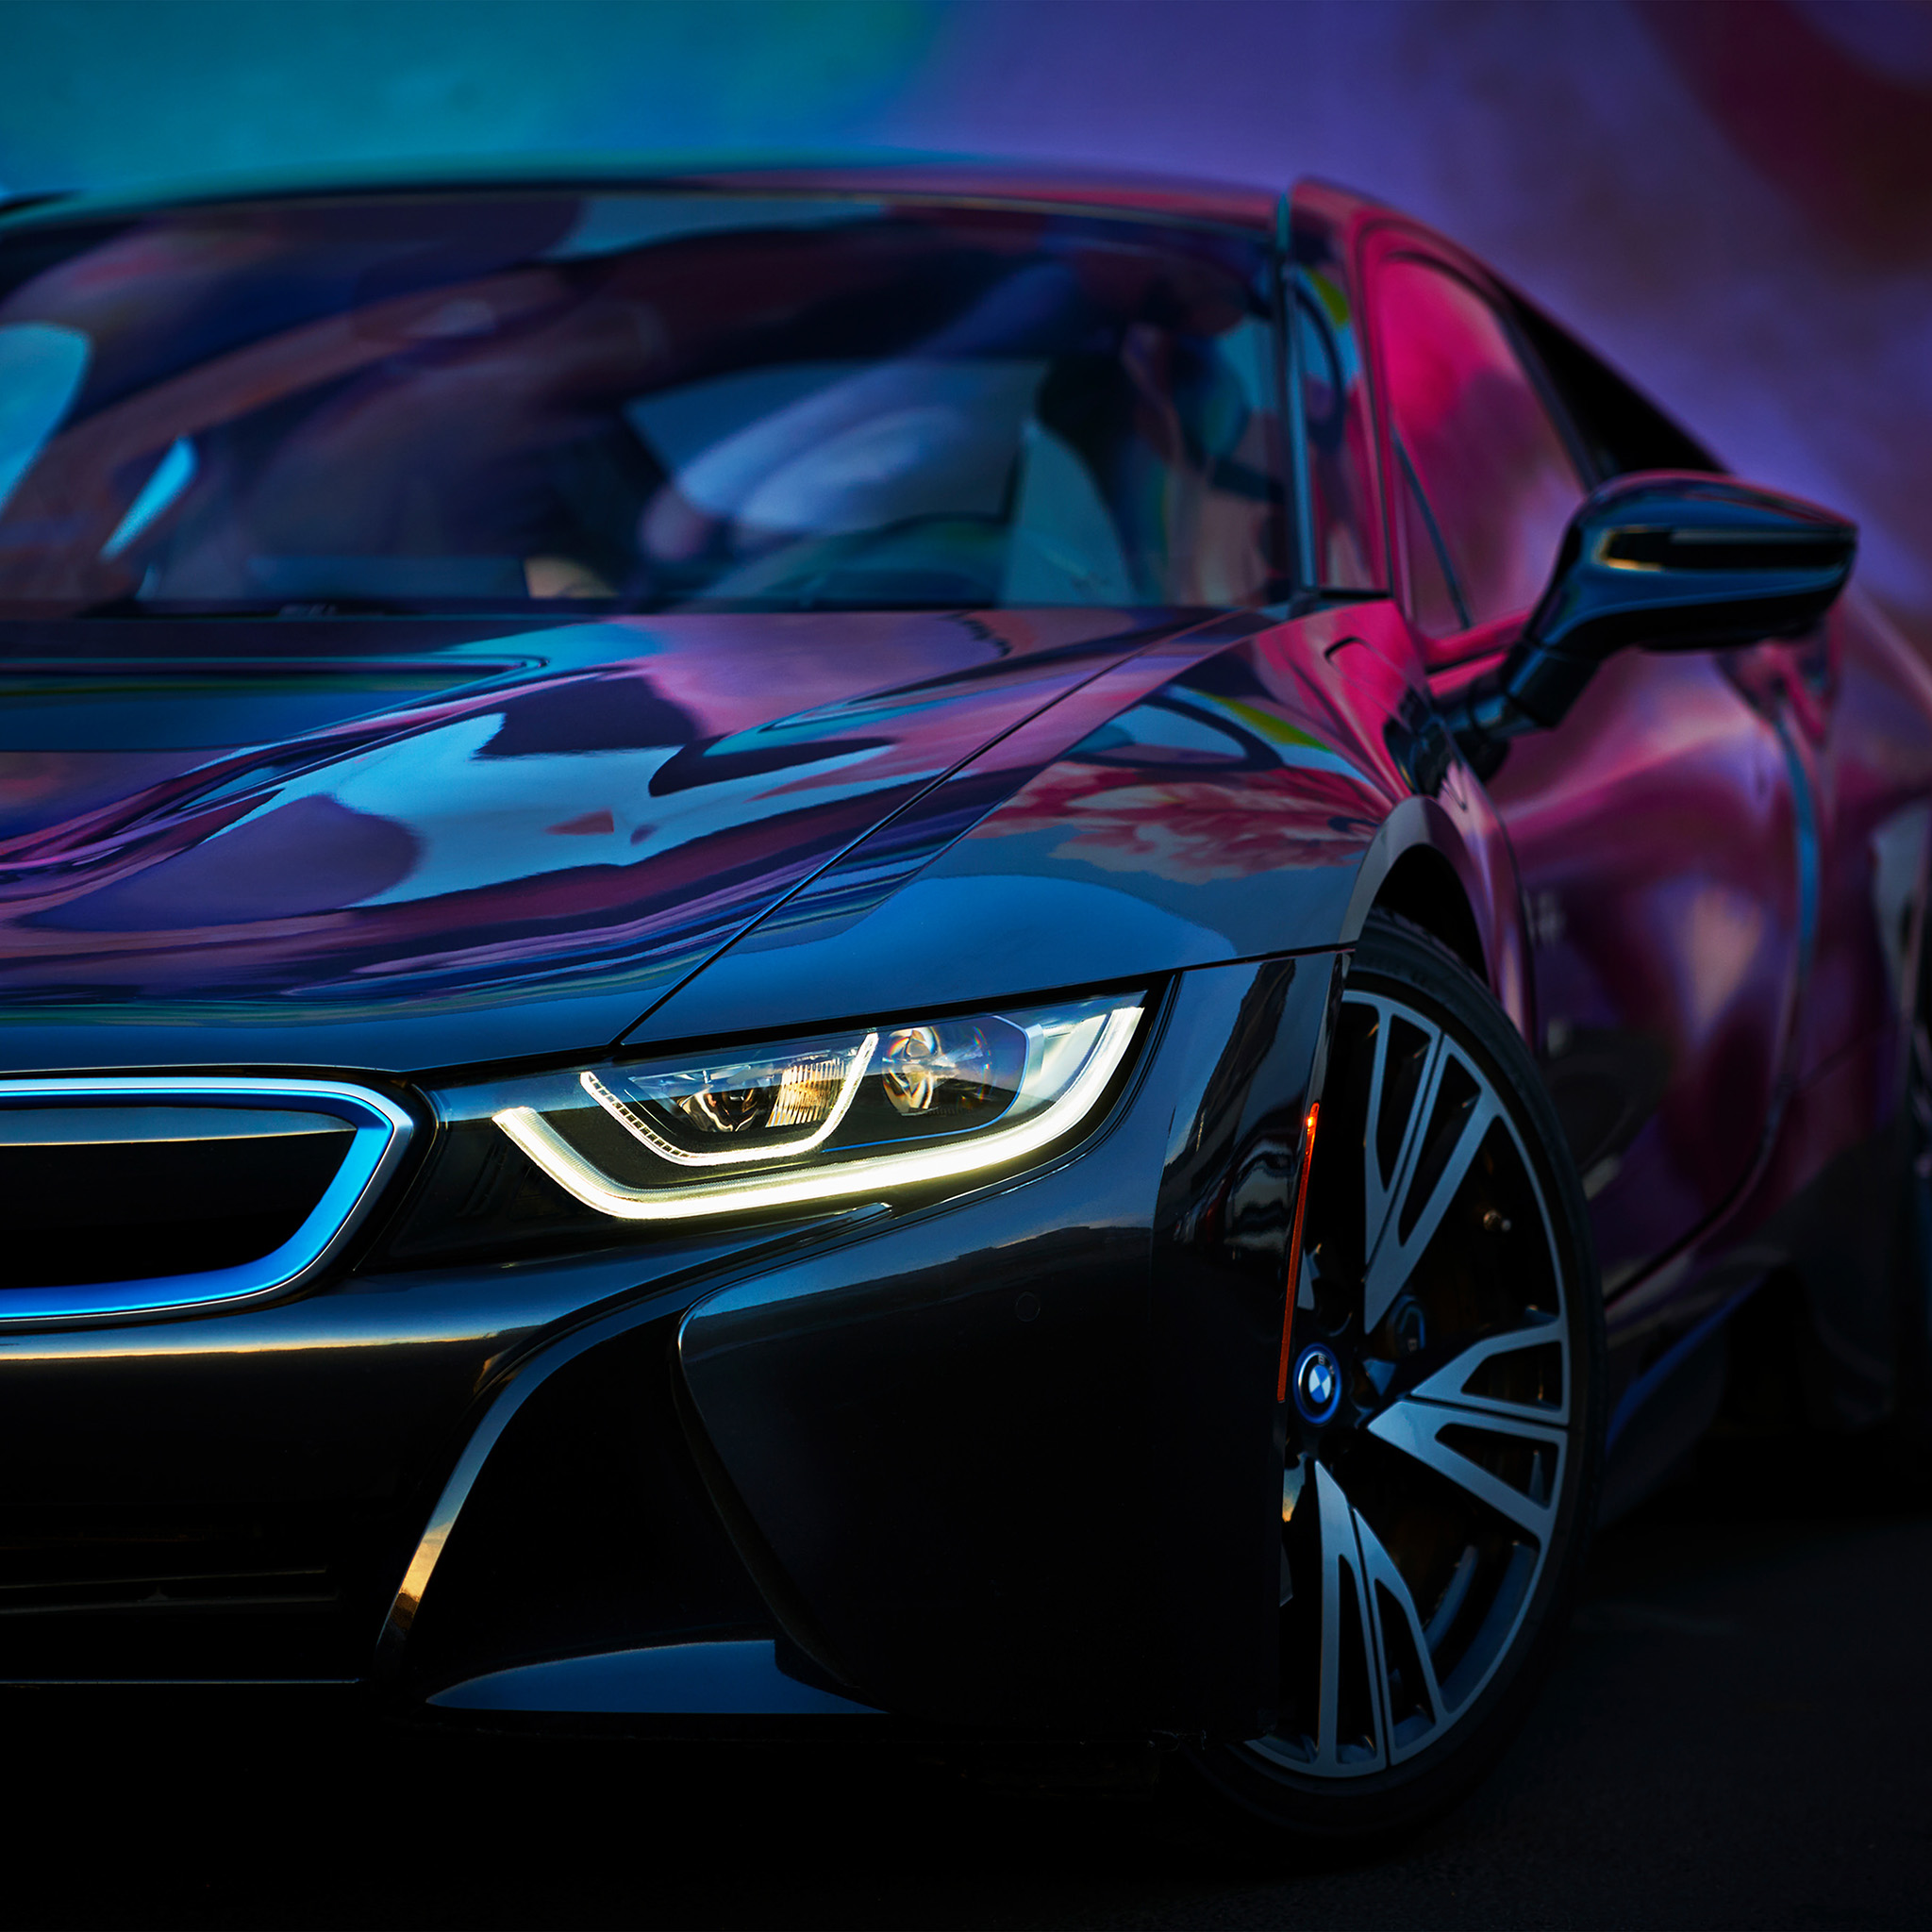 Bmw Car Wallpaper: Bf26-bmw-rainbow-blue-purple-car-art